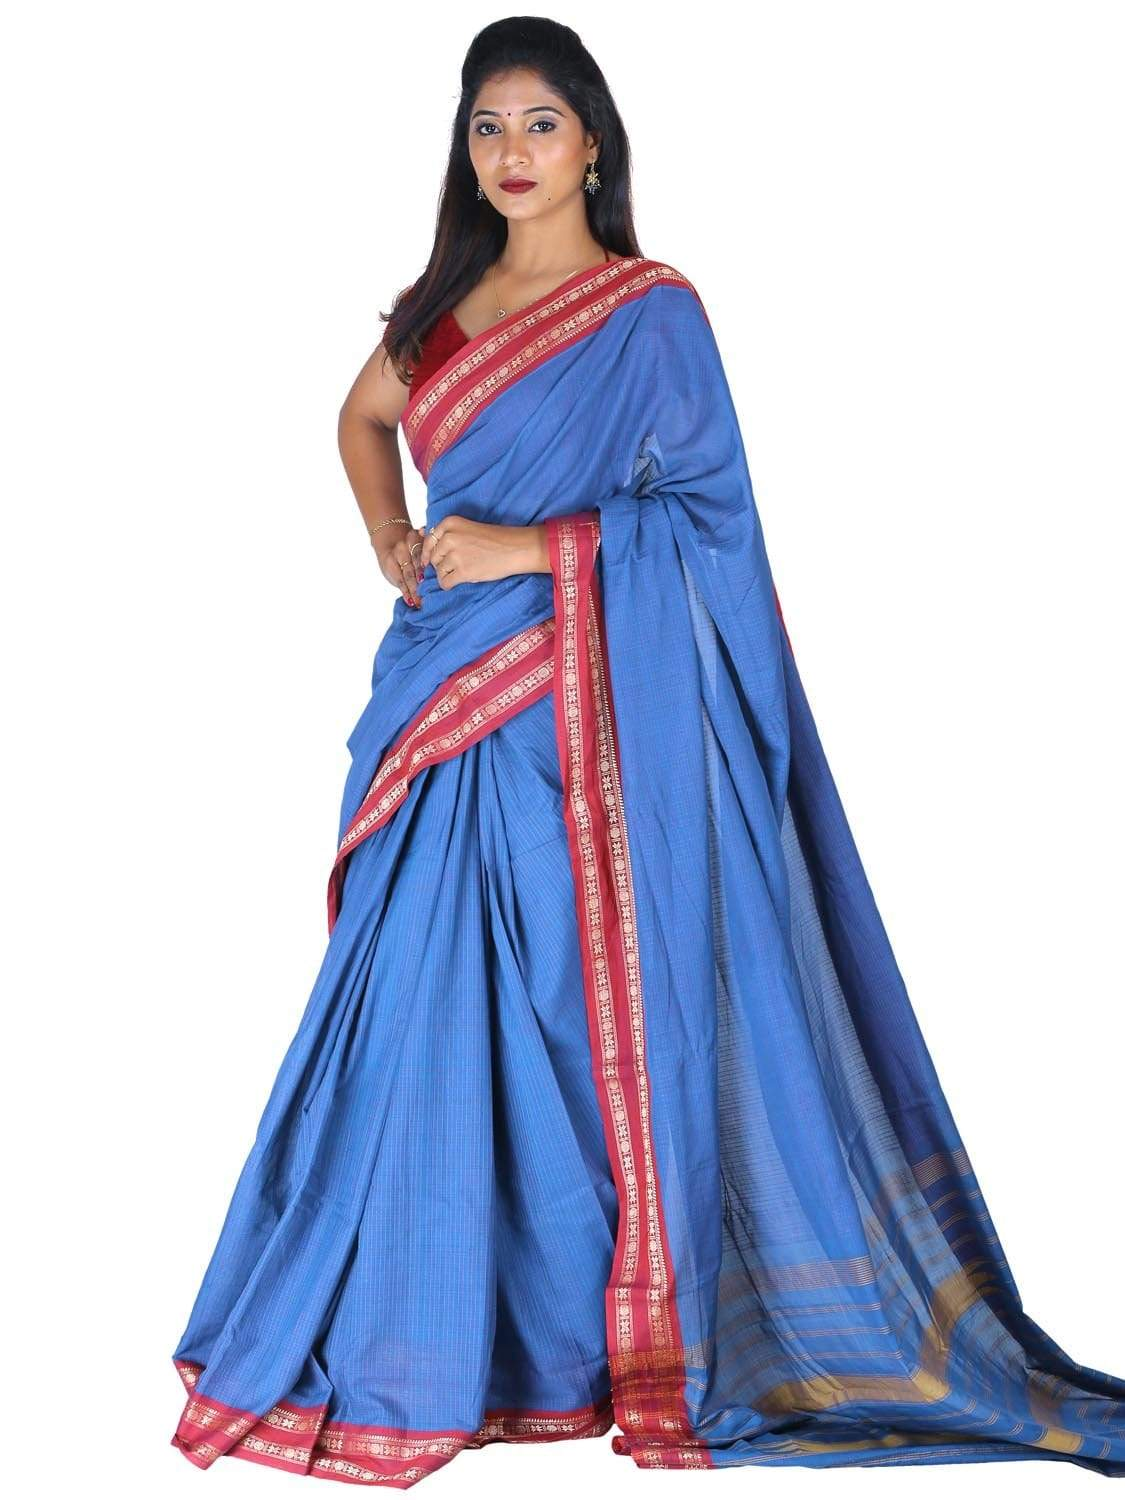 Blue Narayanpet Cotton Handloom Saree with Checks Design np0266